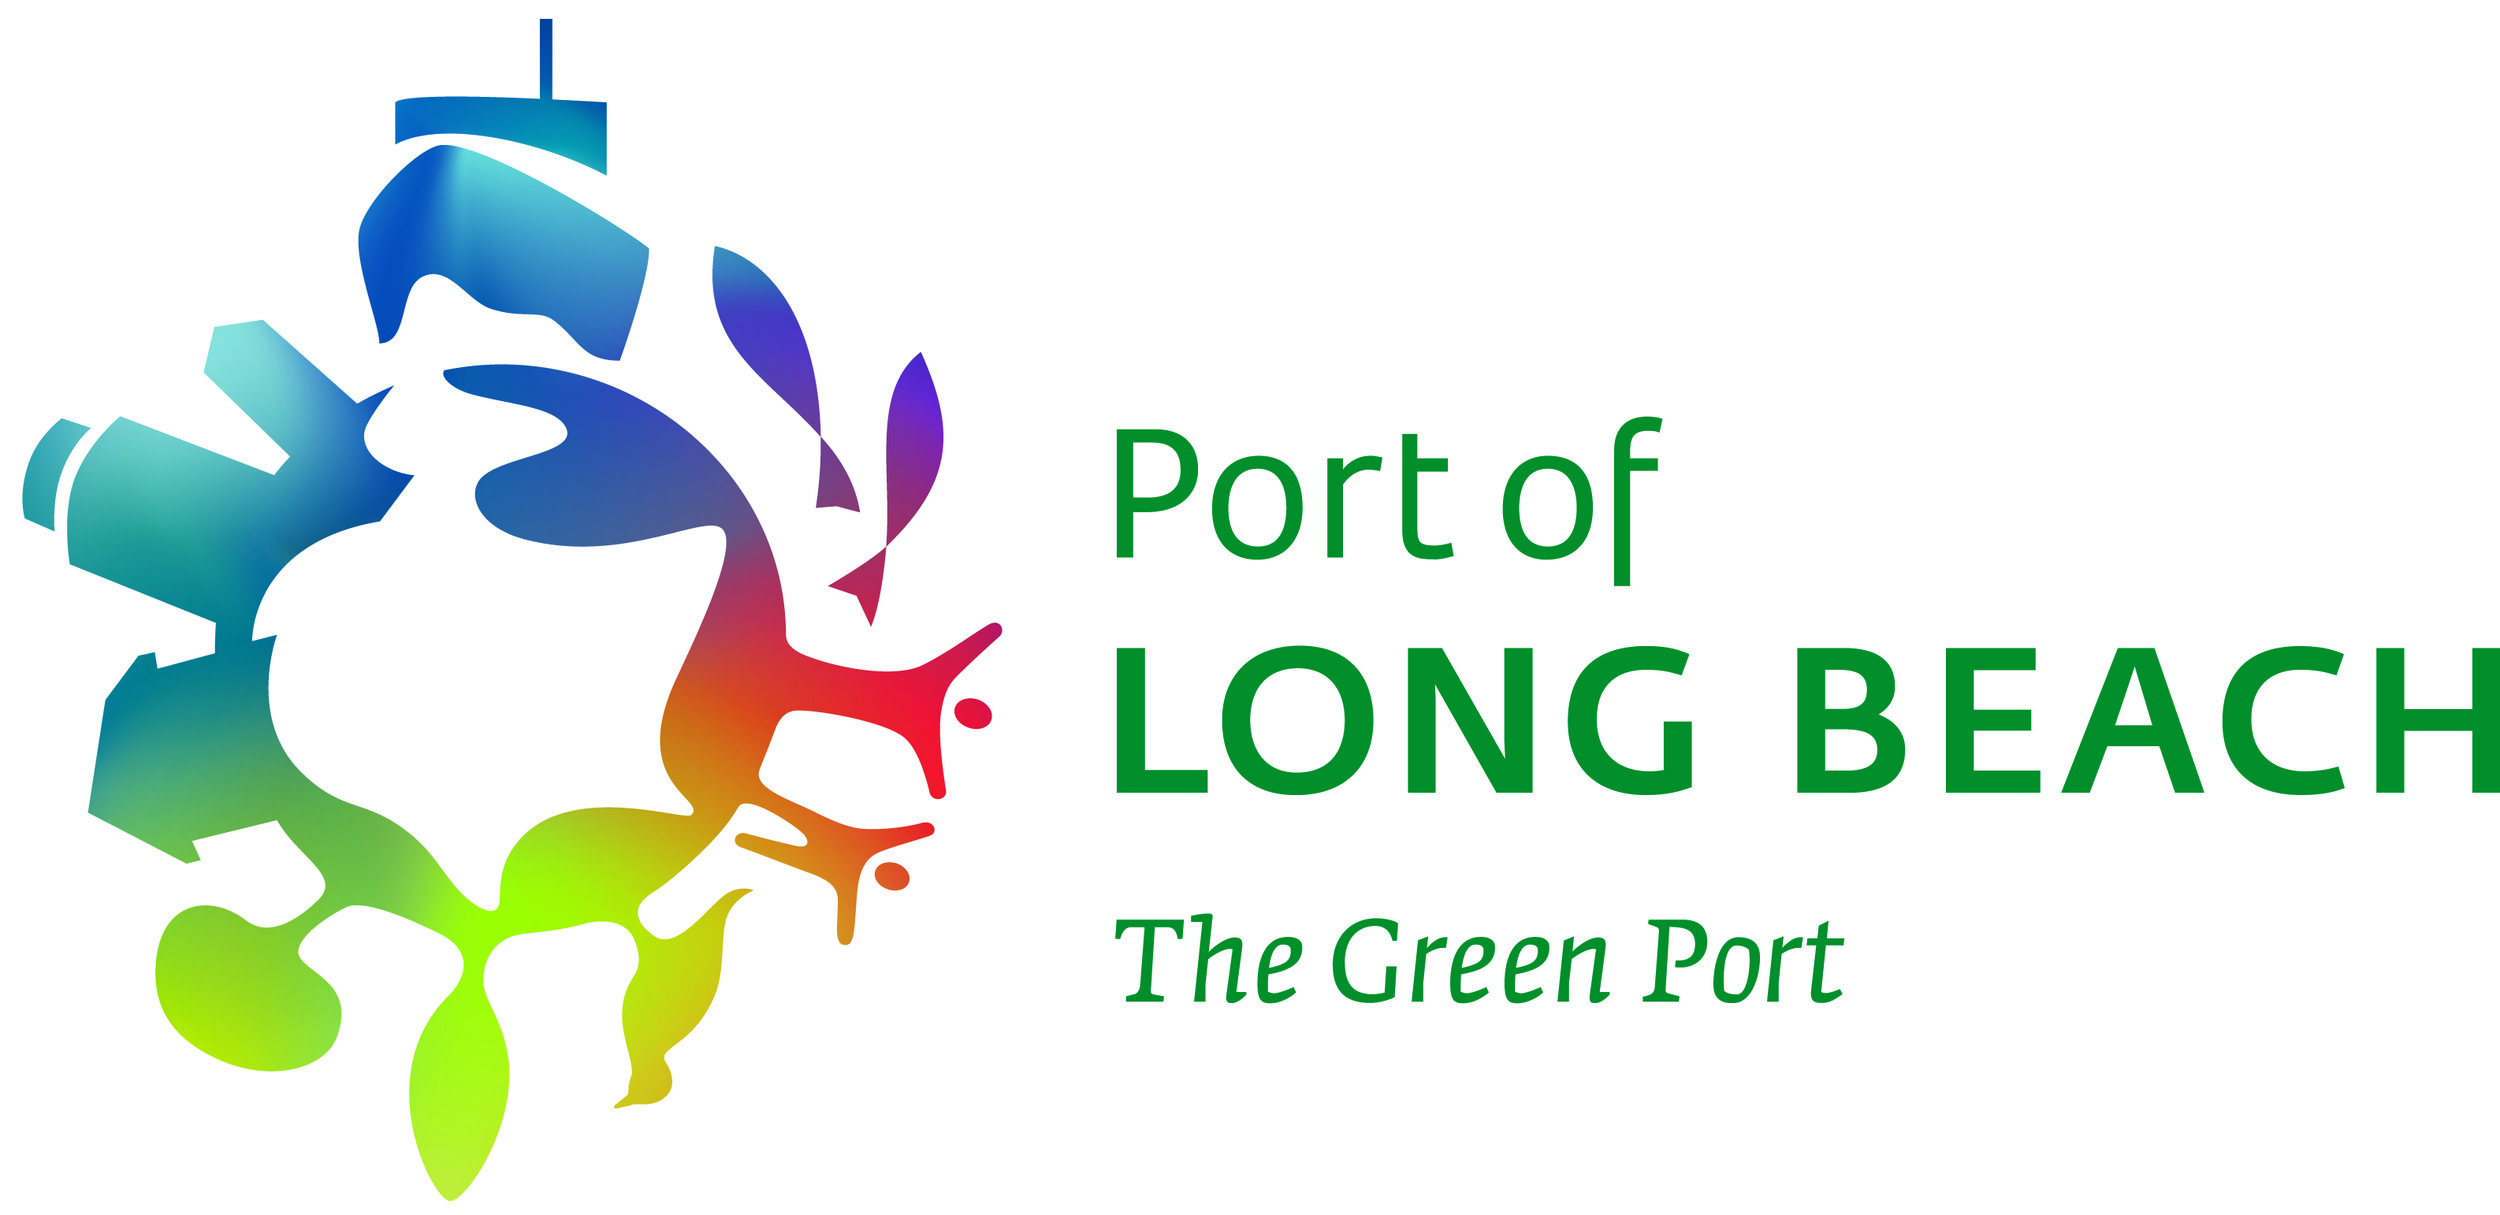 Port of Long Beach.jpg